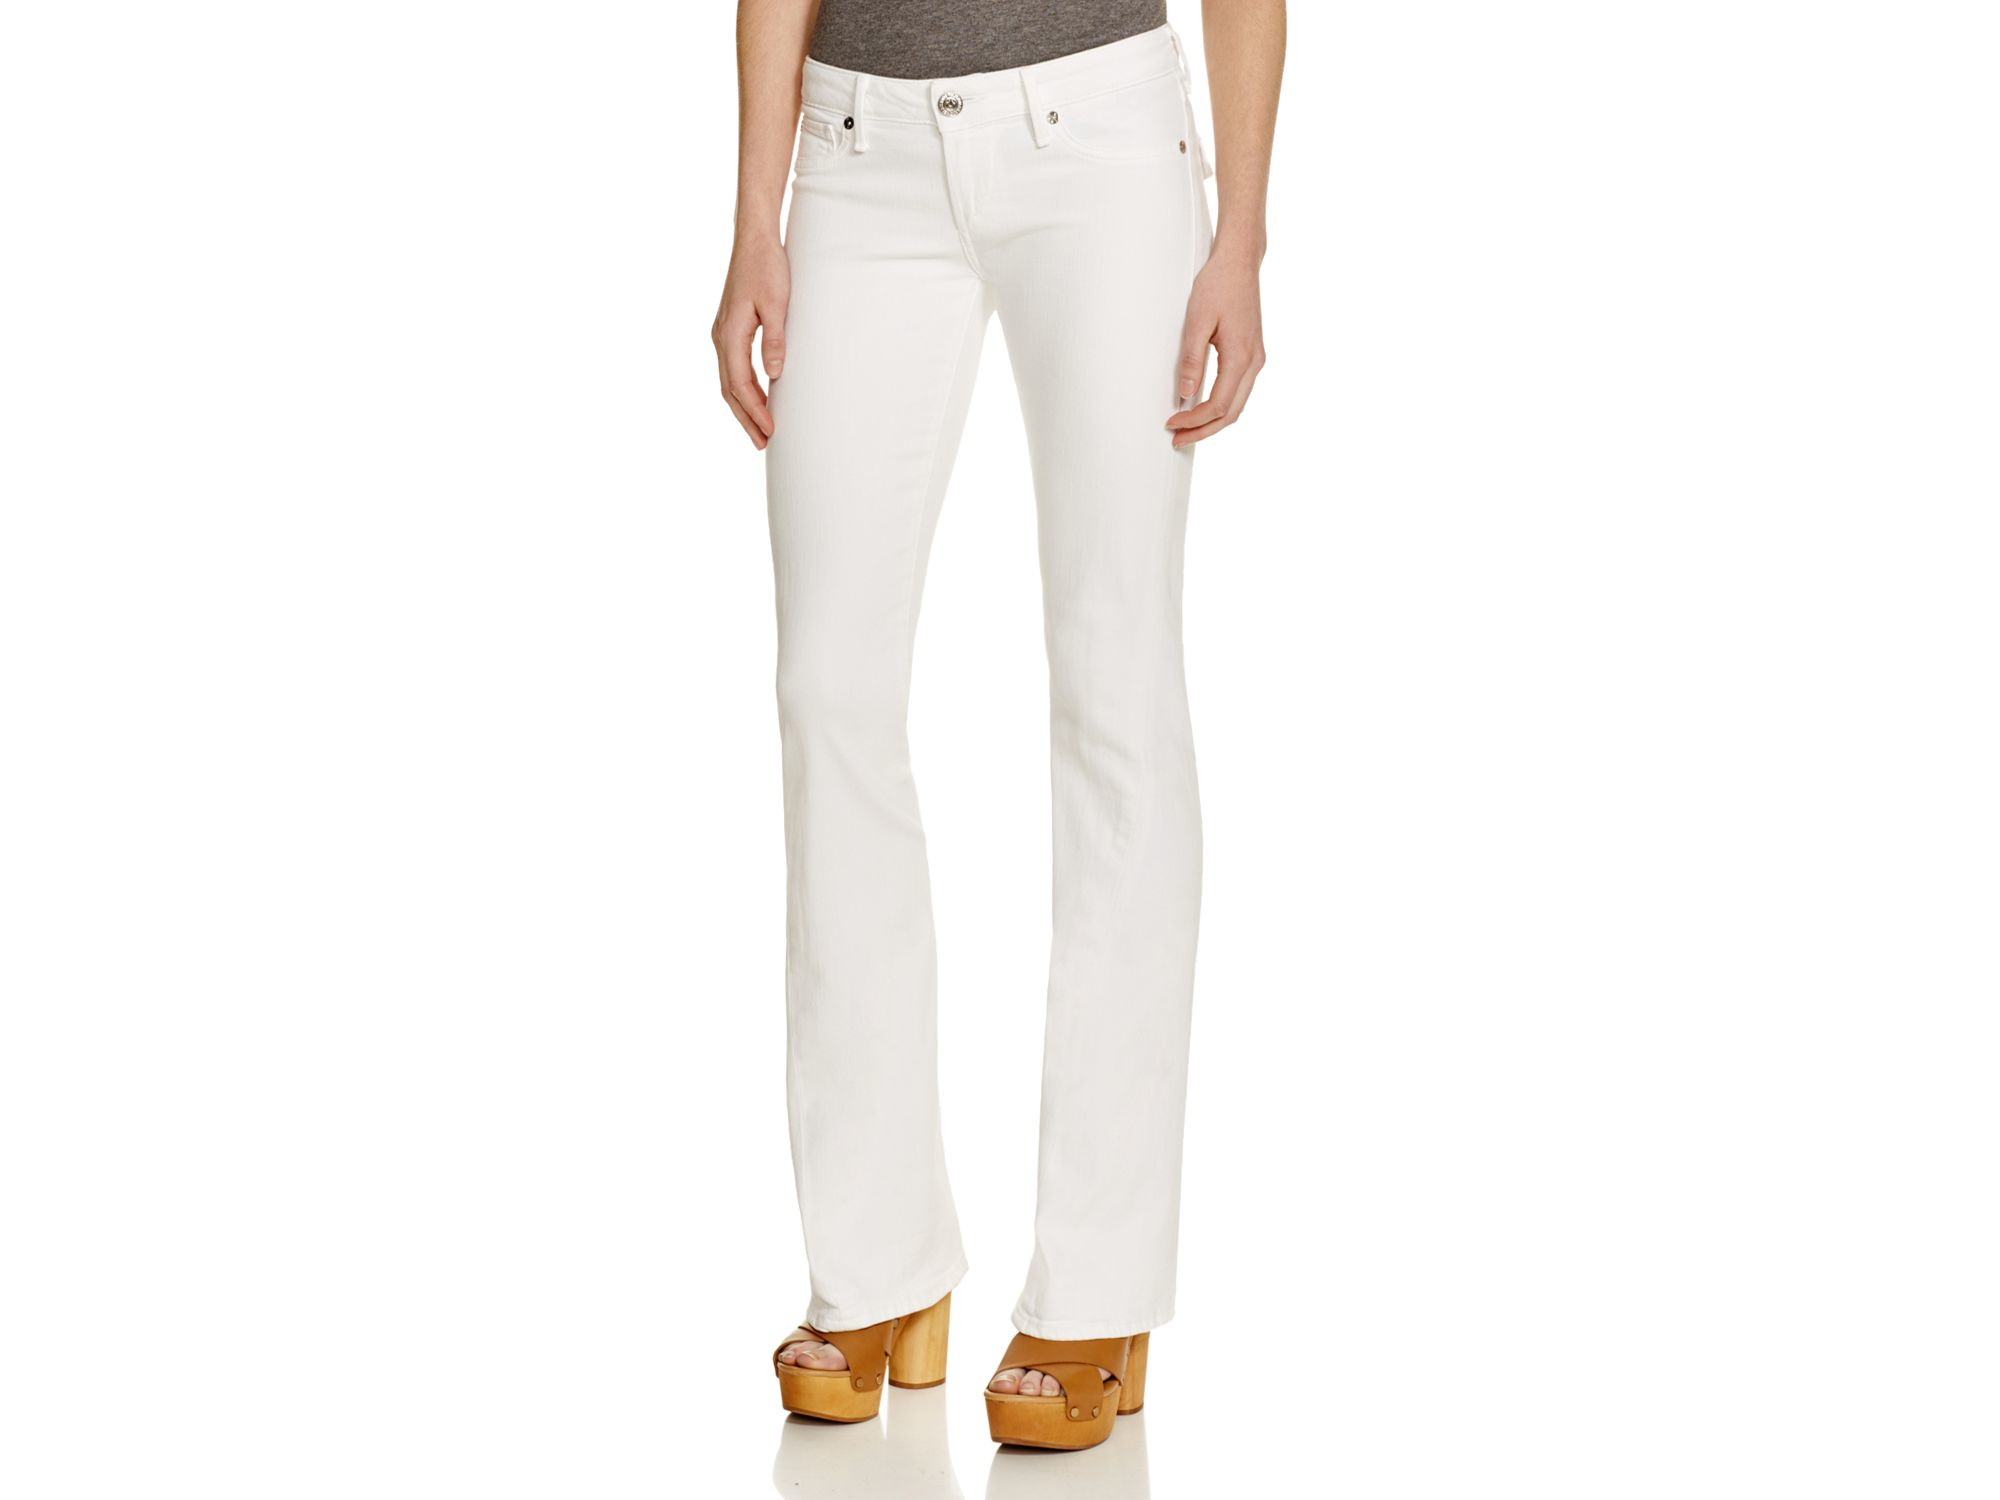 True religion Joey Low Rise Flare Jeans In Optic White in White | Lyst